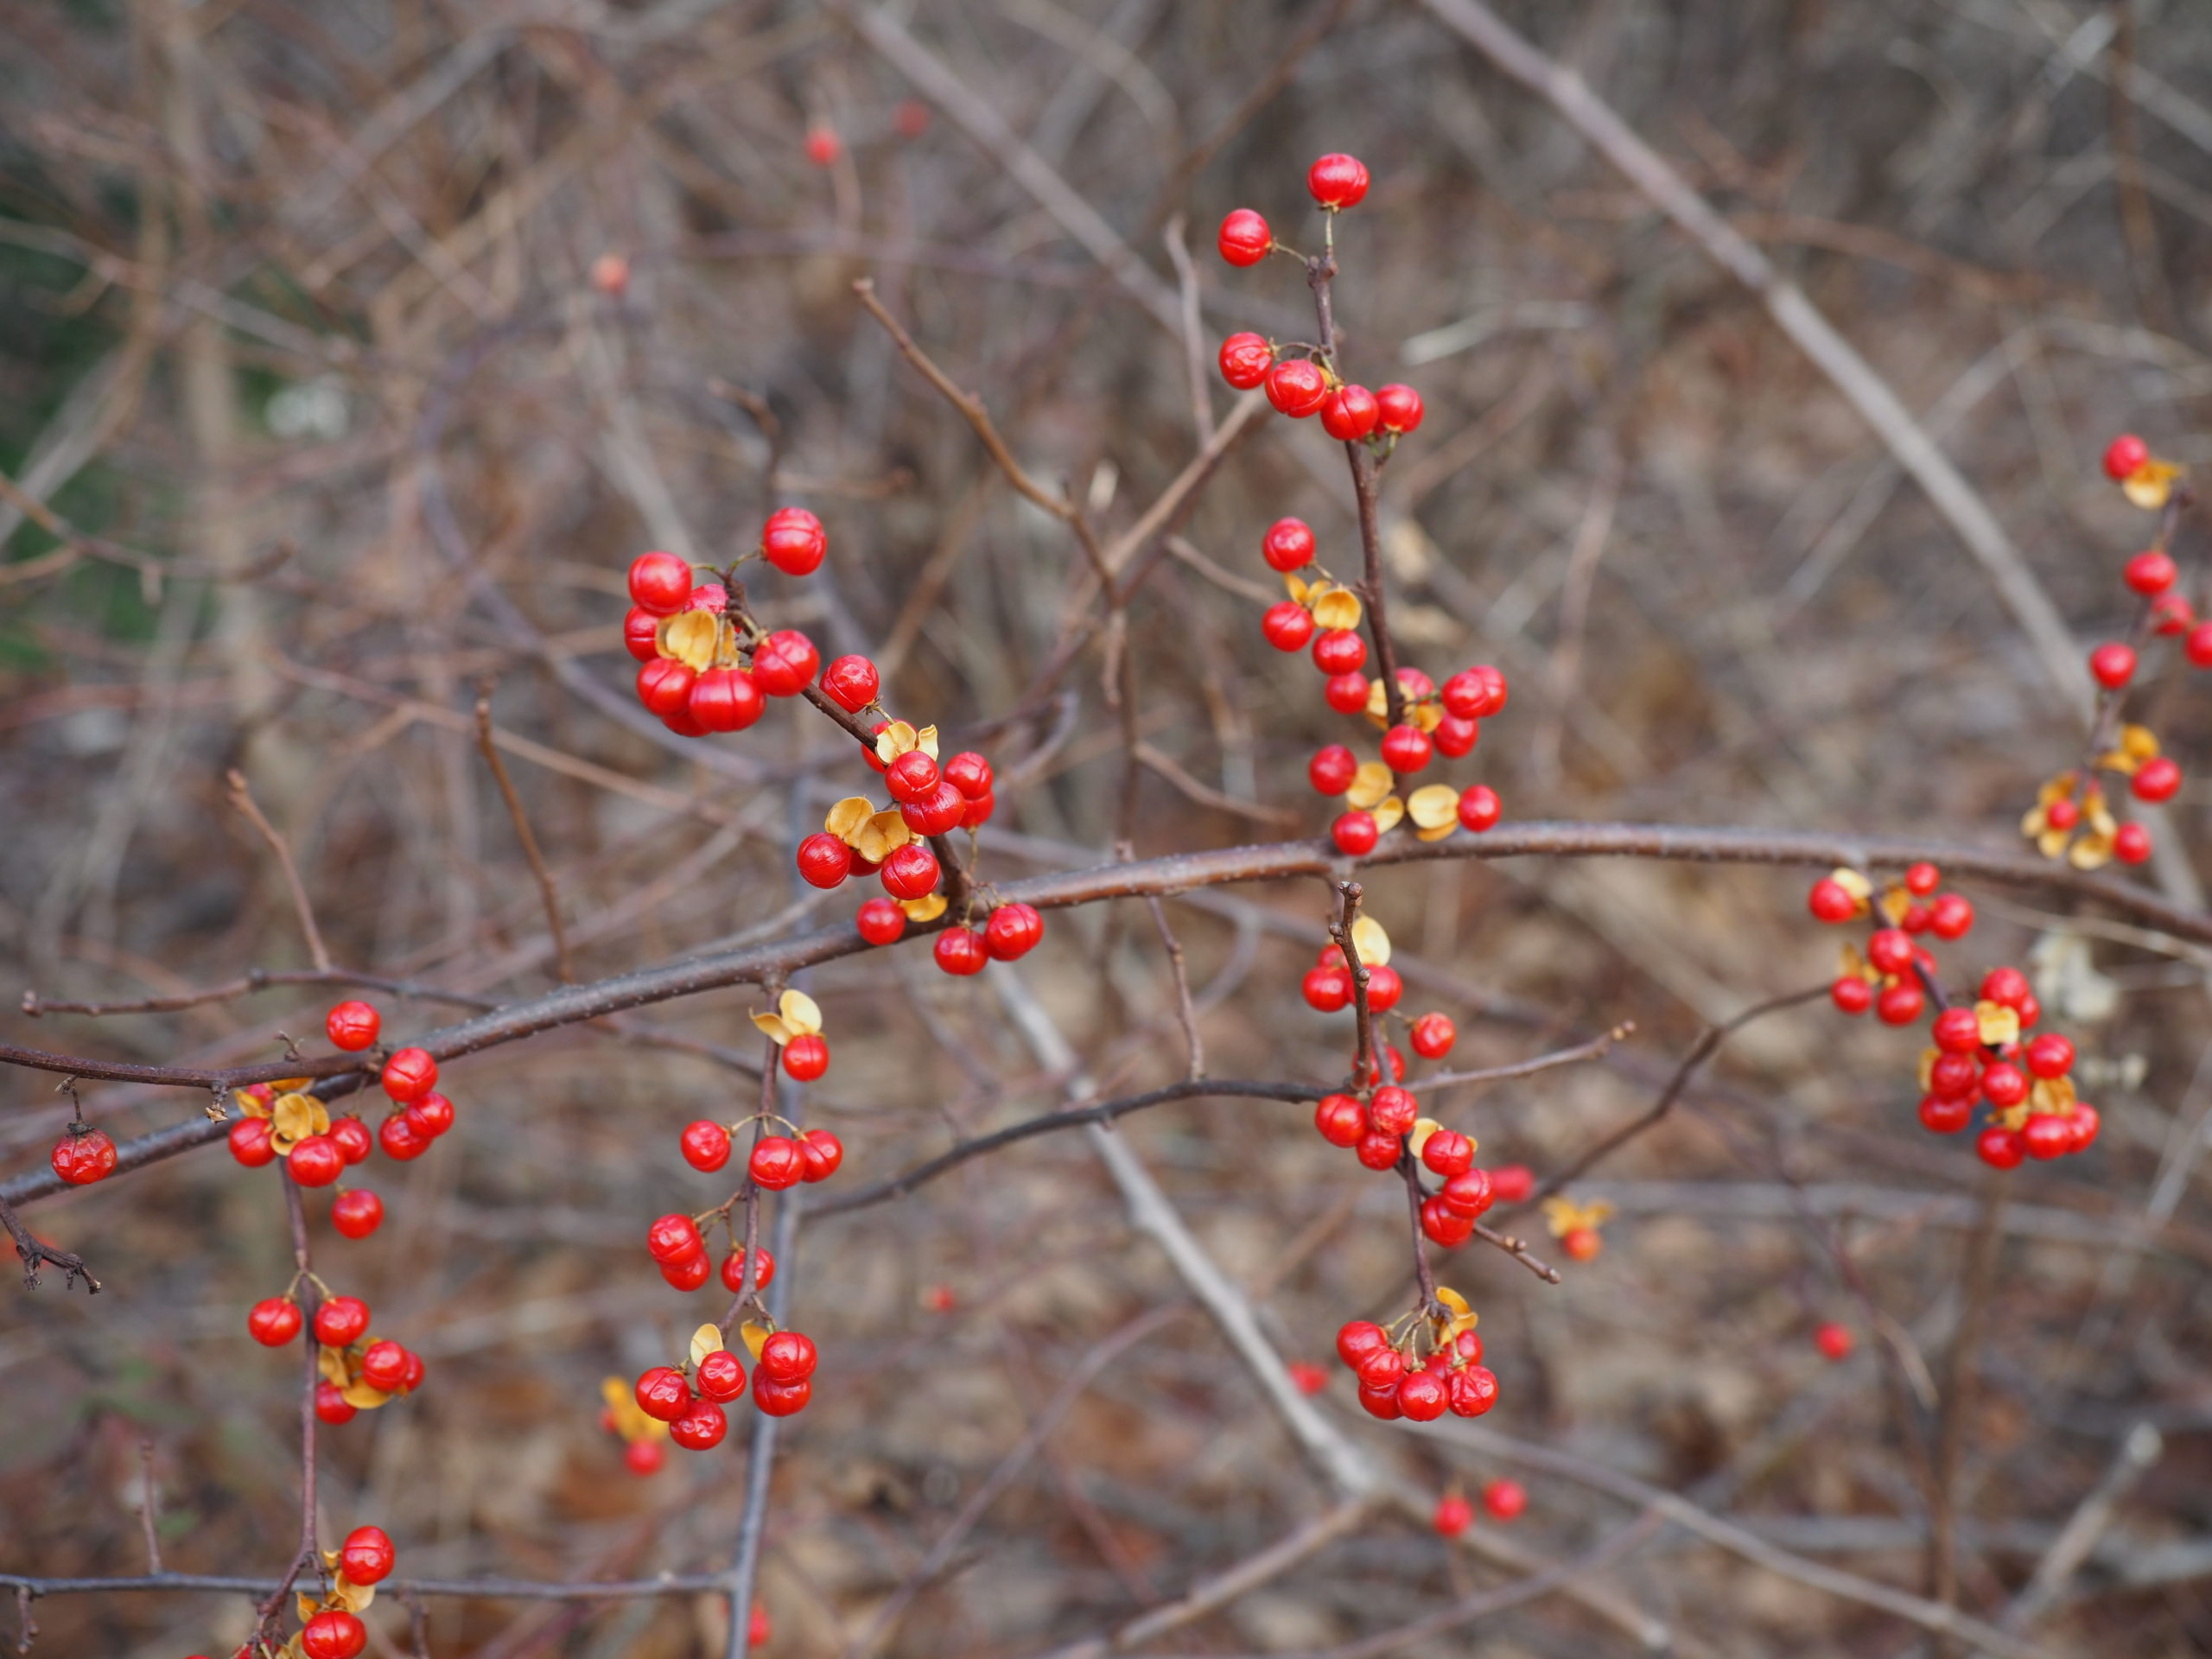 Other than the long, woody vine, one clear way to know you have bittersweet is that the fruits have a calyx, or papery sheath, that opens as the berry ripens. Winterberry does not have this feature.